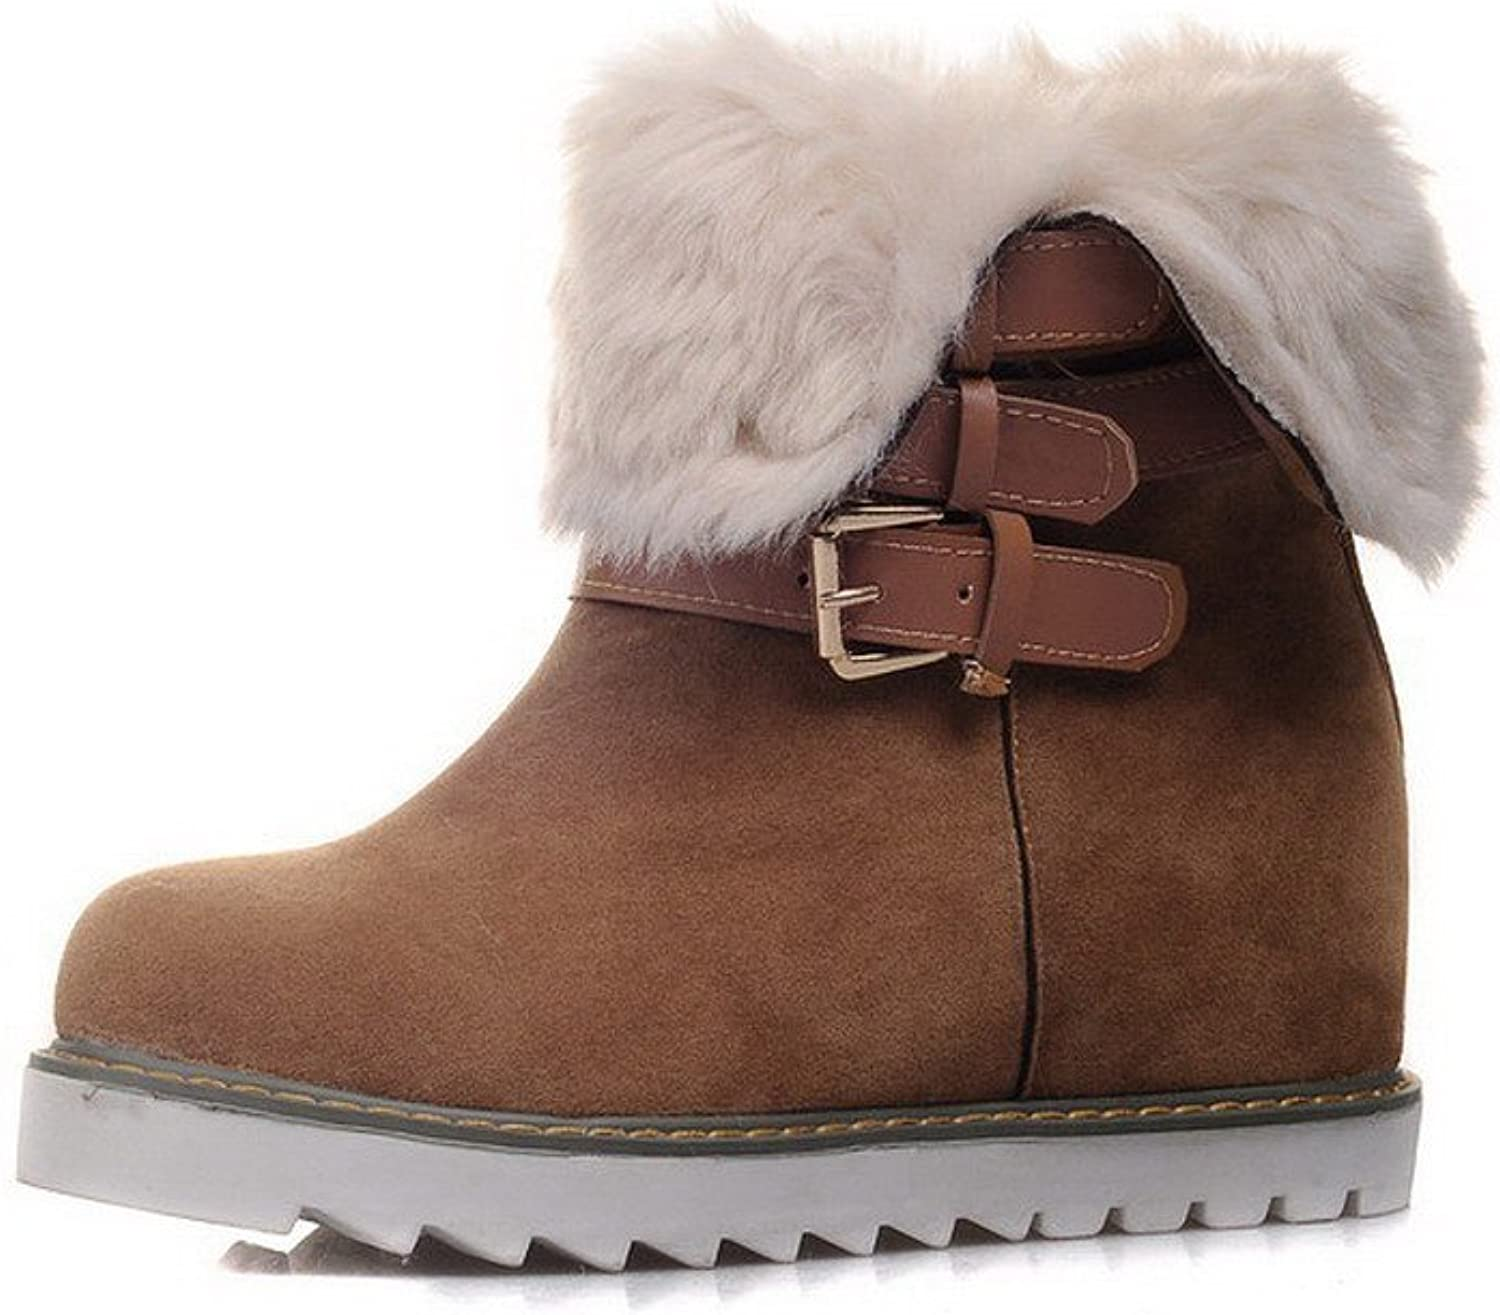 AllhqFashion Women's Kitten-Heels Frosted Low-top Solid Pull-on Snow-Boots